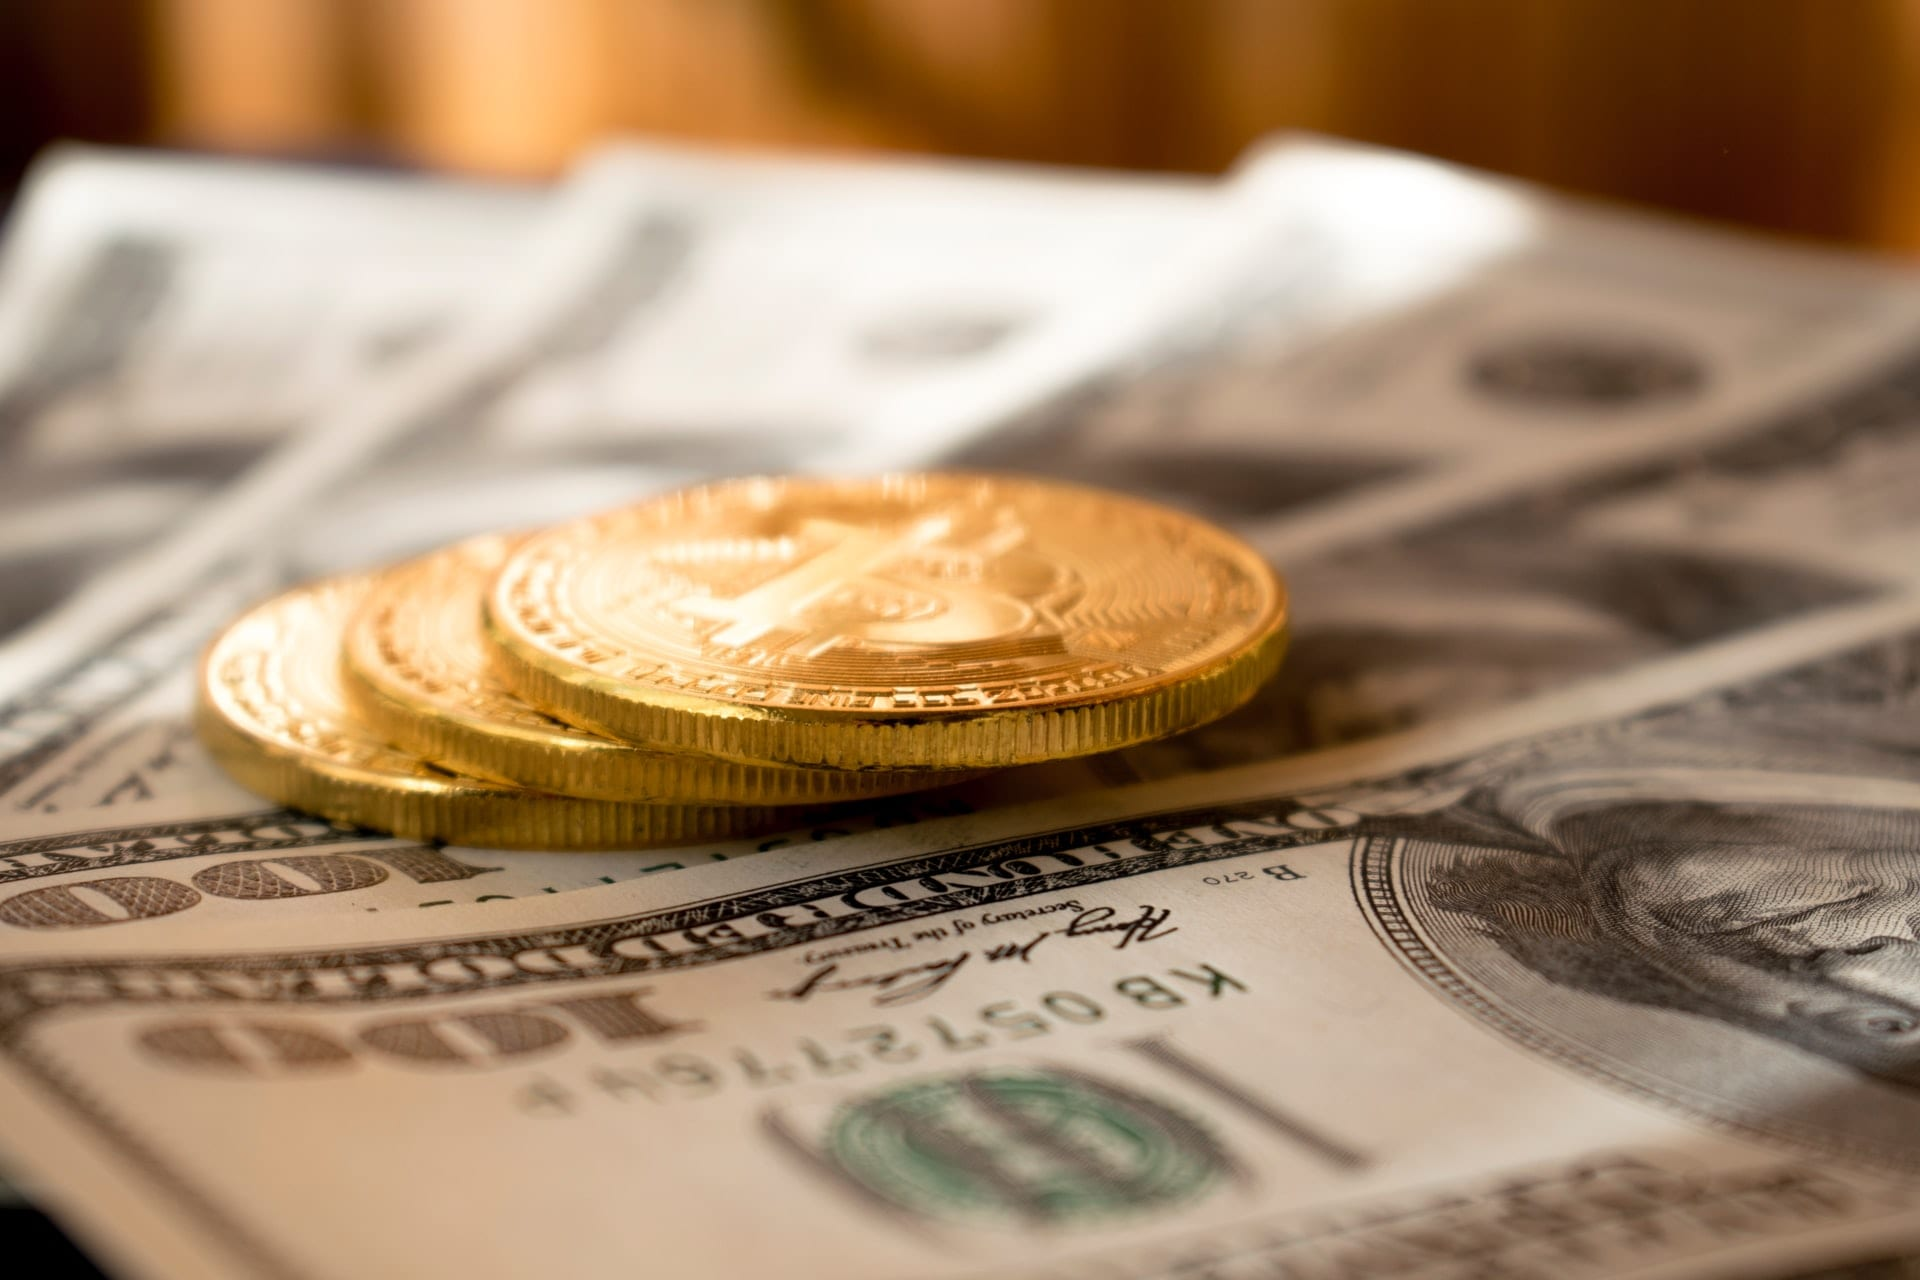 StrategyDriven Managing Your Finances Article   What Are Your Options To Fund a Business?